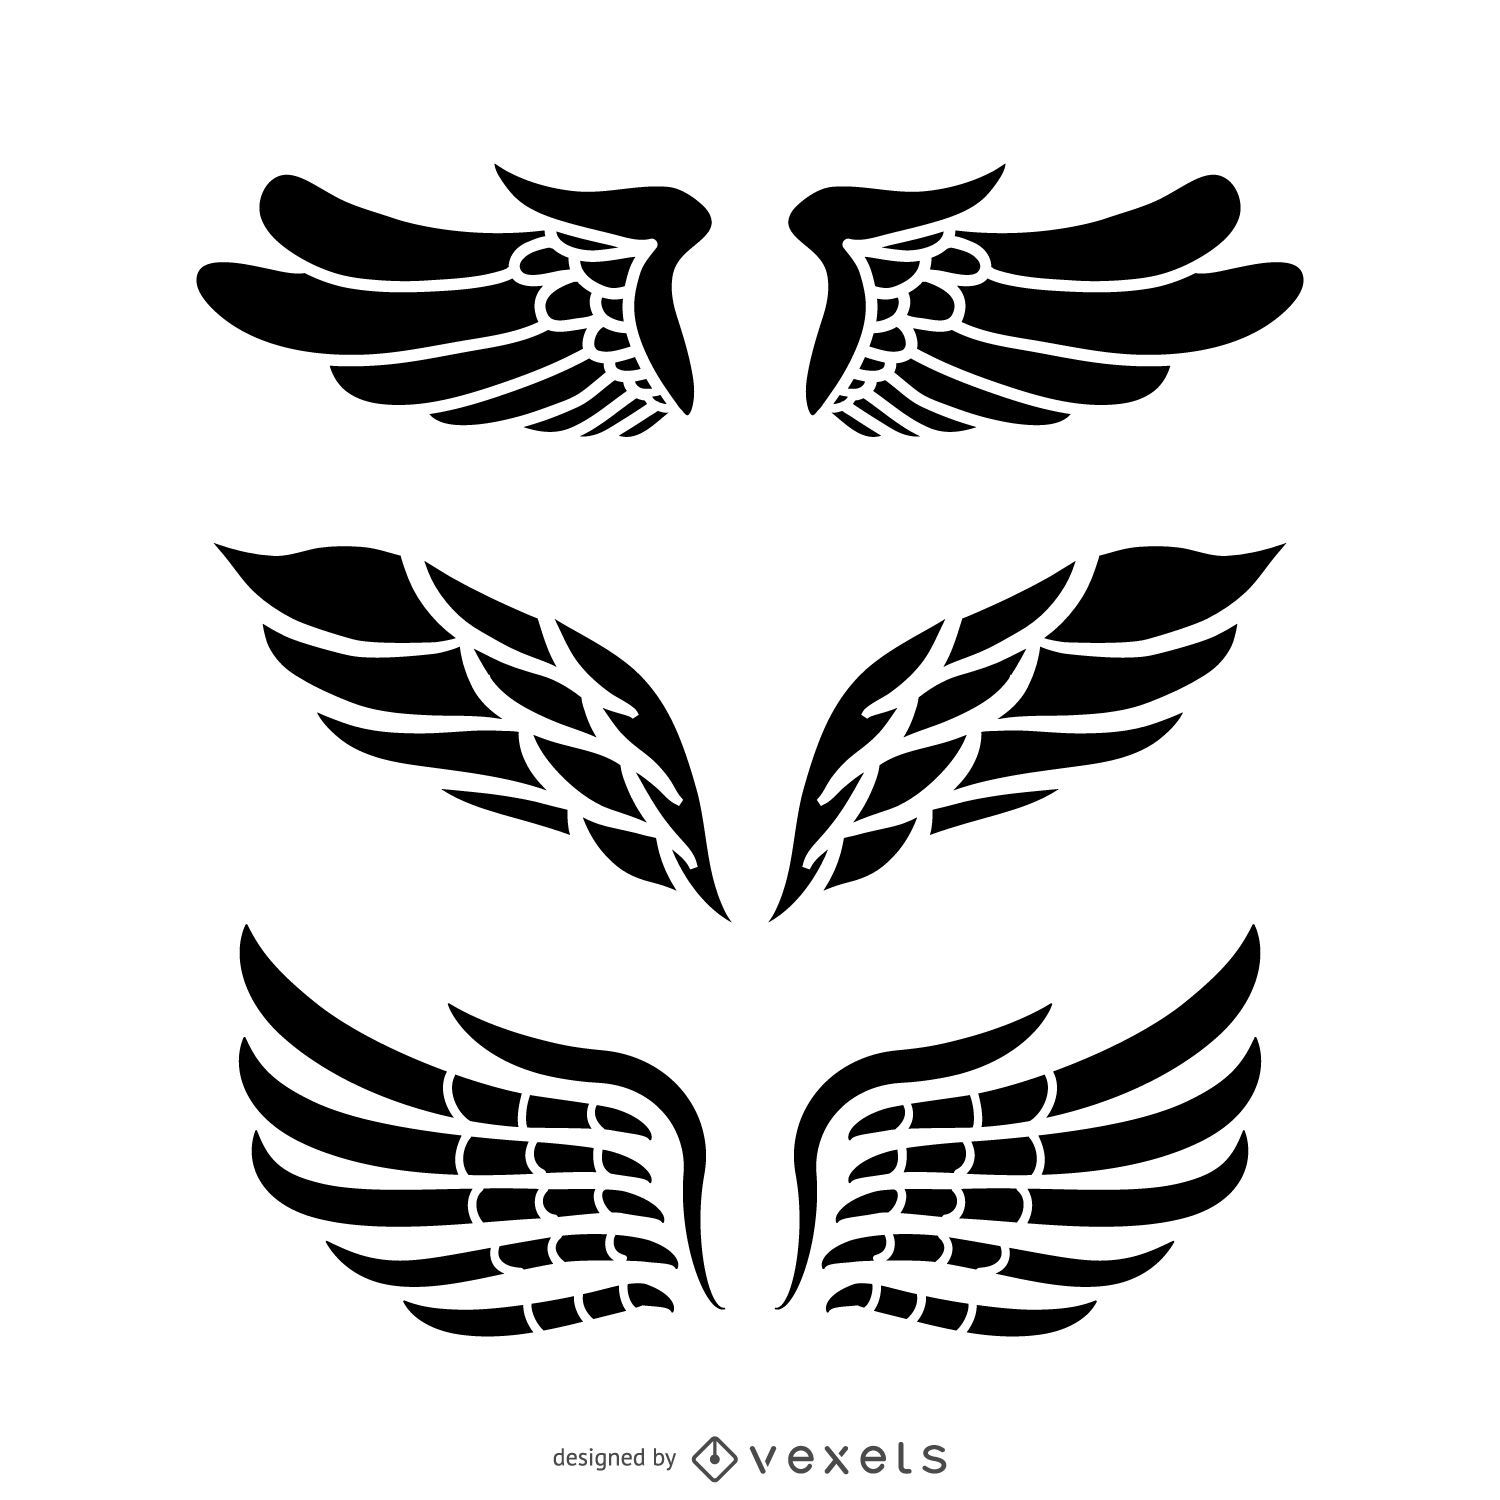 Isolated Angel Wings Illustrations